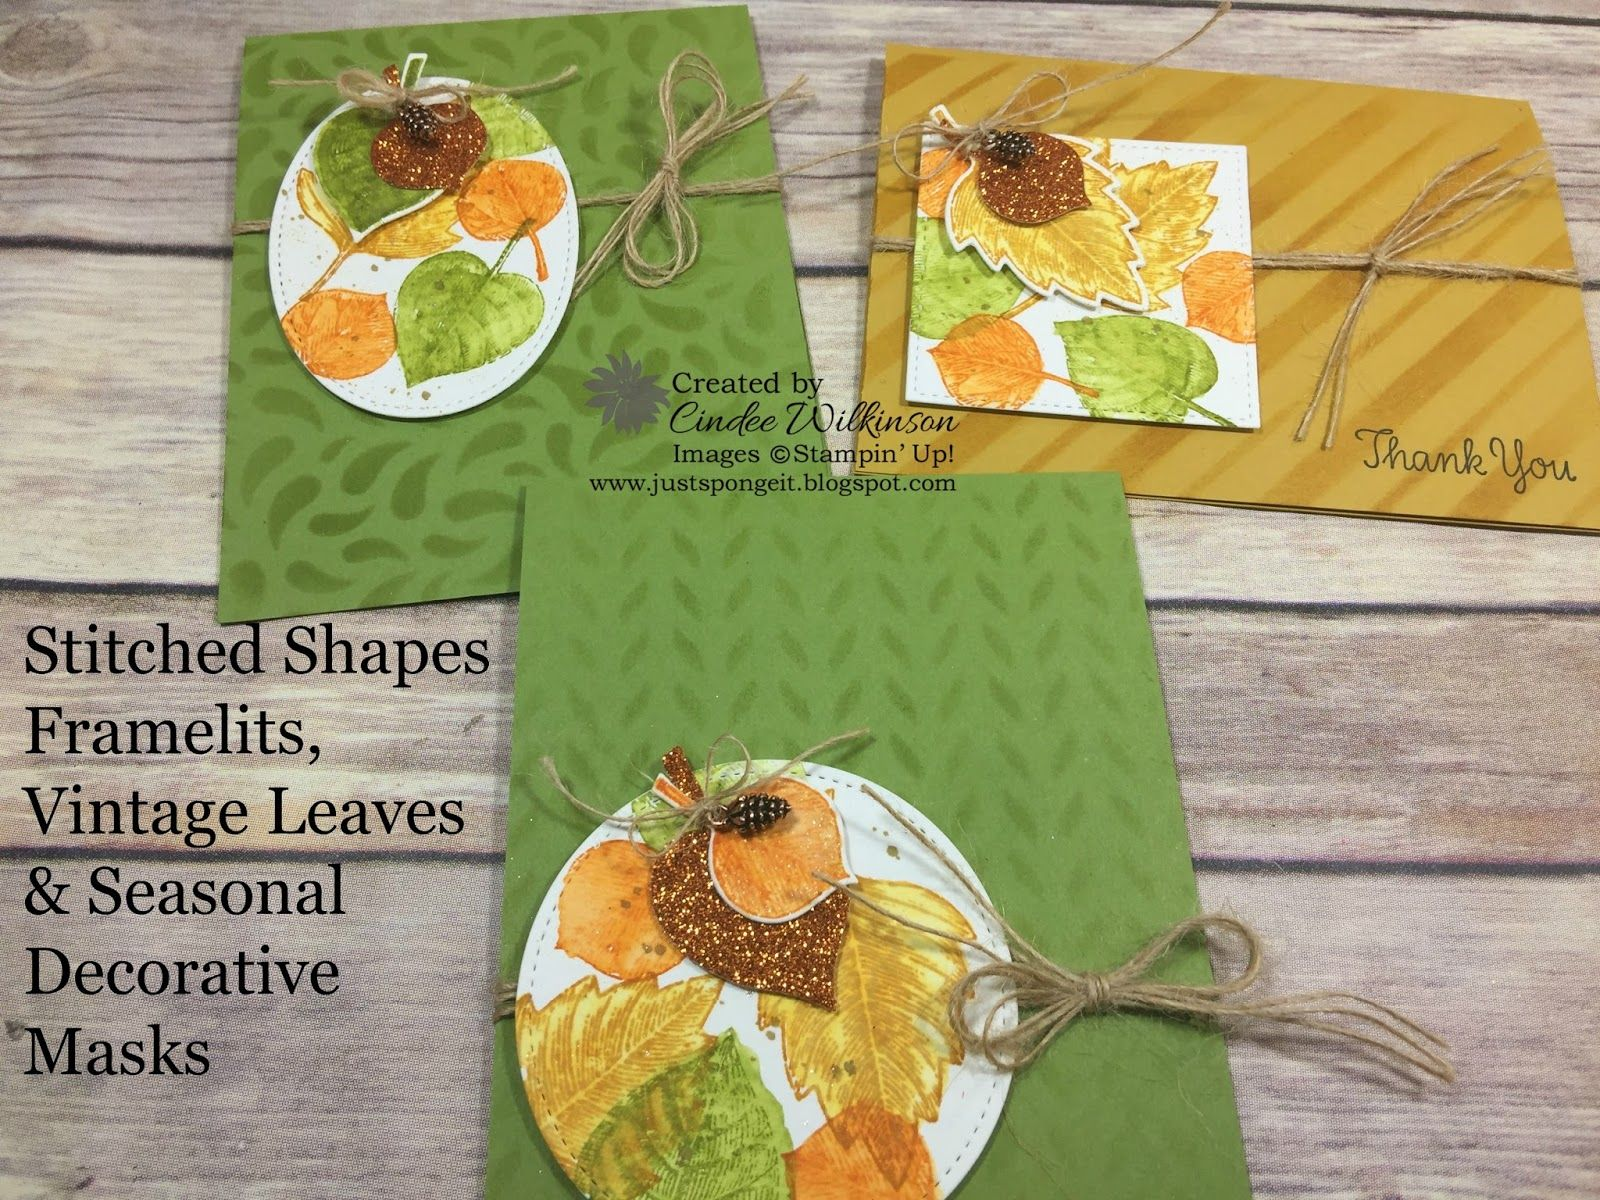 Stampin Up Seasonal Decorative Masks Classy Faux Watercolor Technique On The Leavescindee Vintage Leaves Inspiration